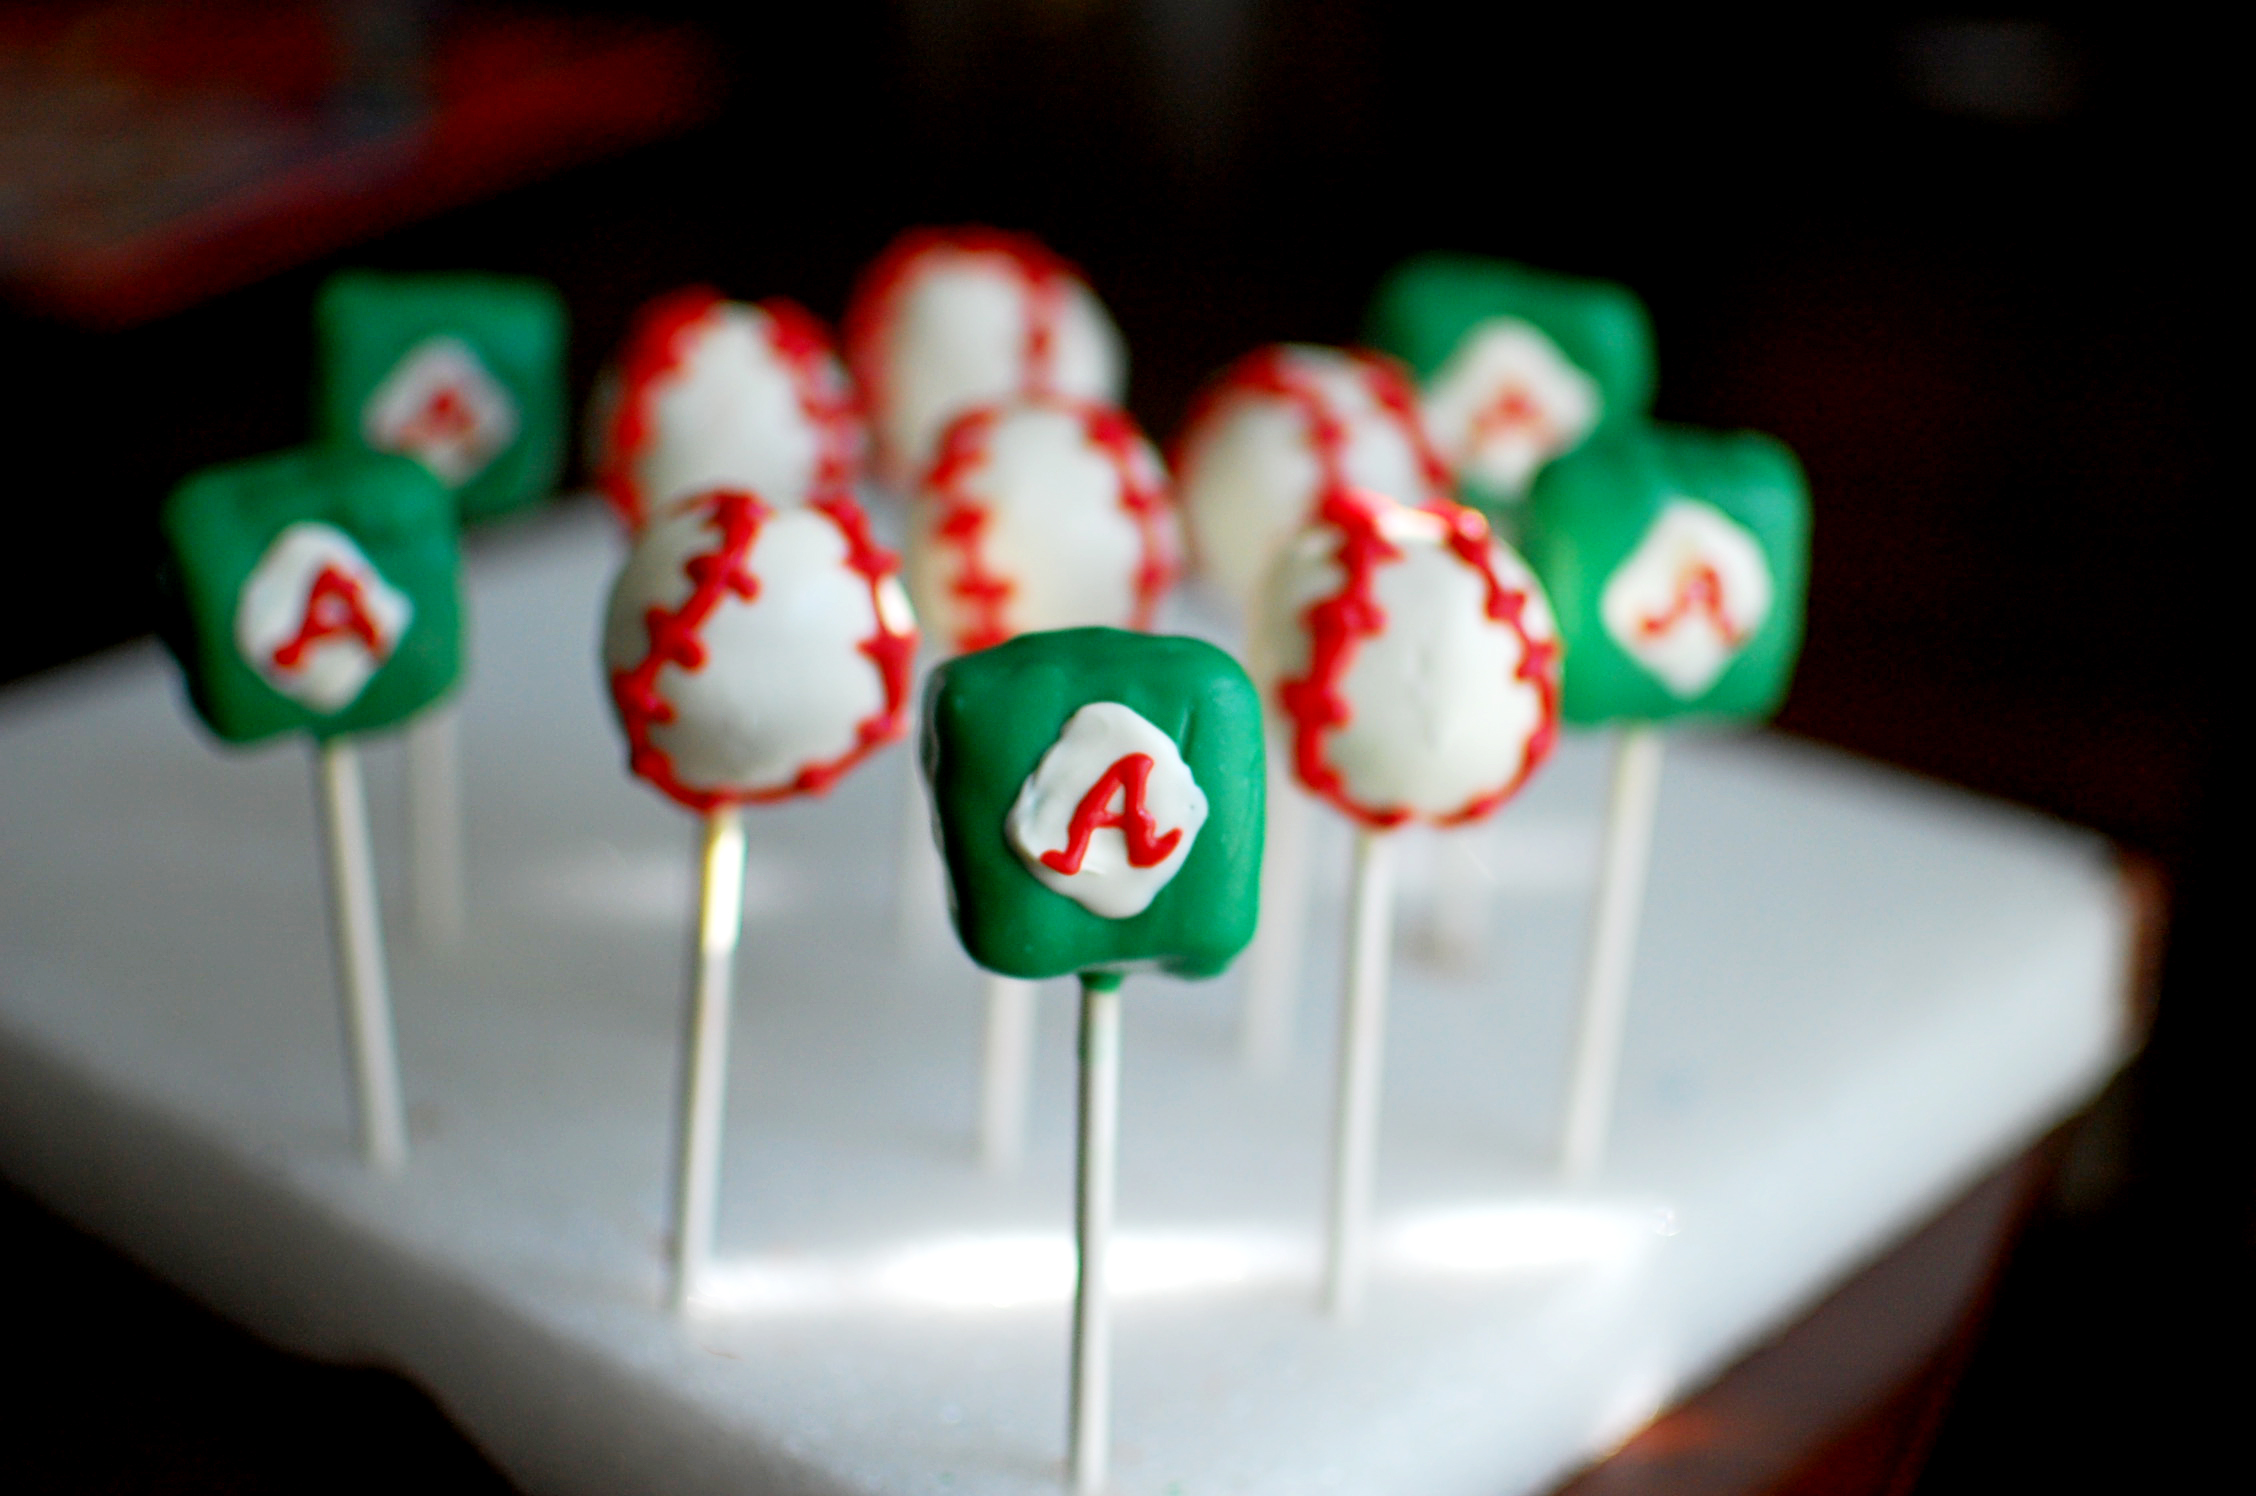 Mini Baseball team cake pops